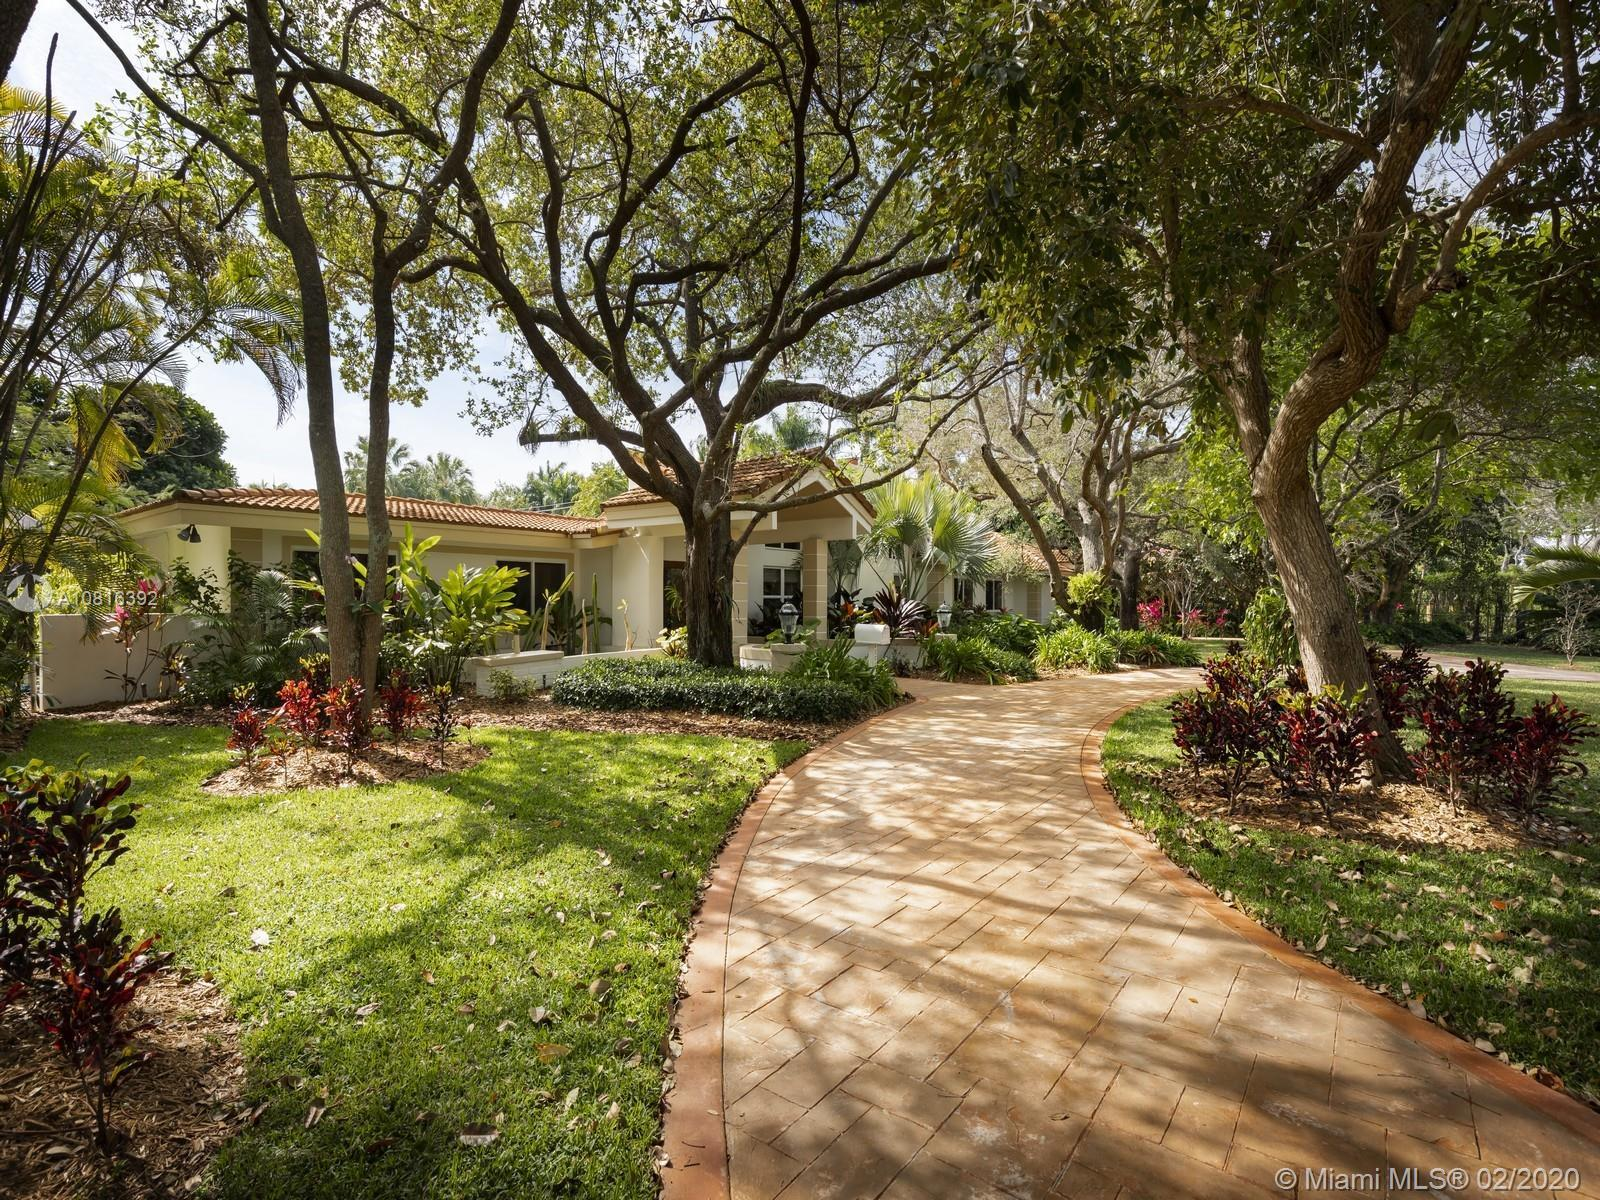 A classic family friendly home situated on the scenic backdrop of Pinecrest. Surrounded by a canopy